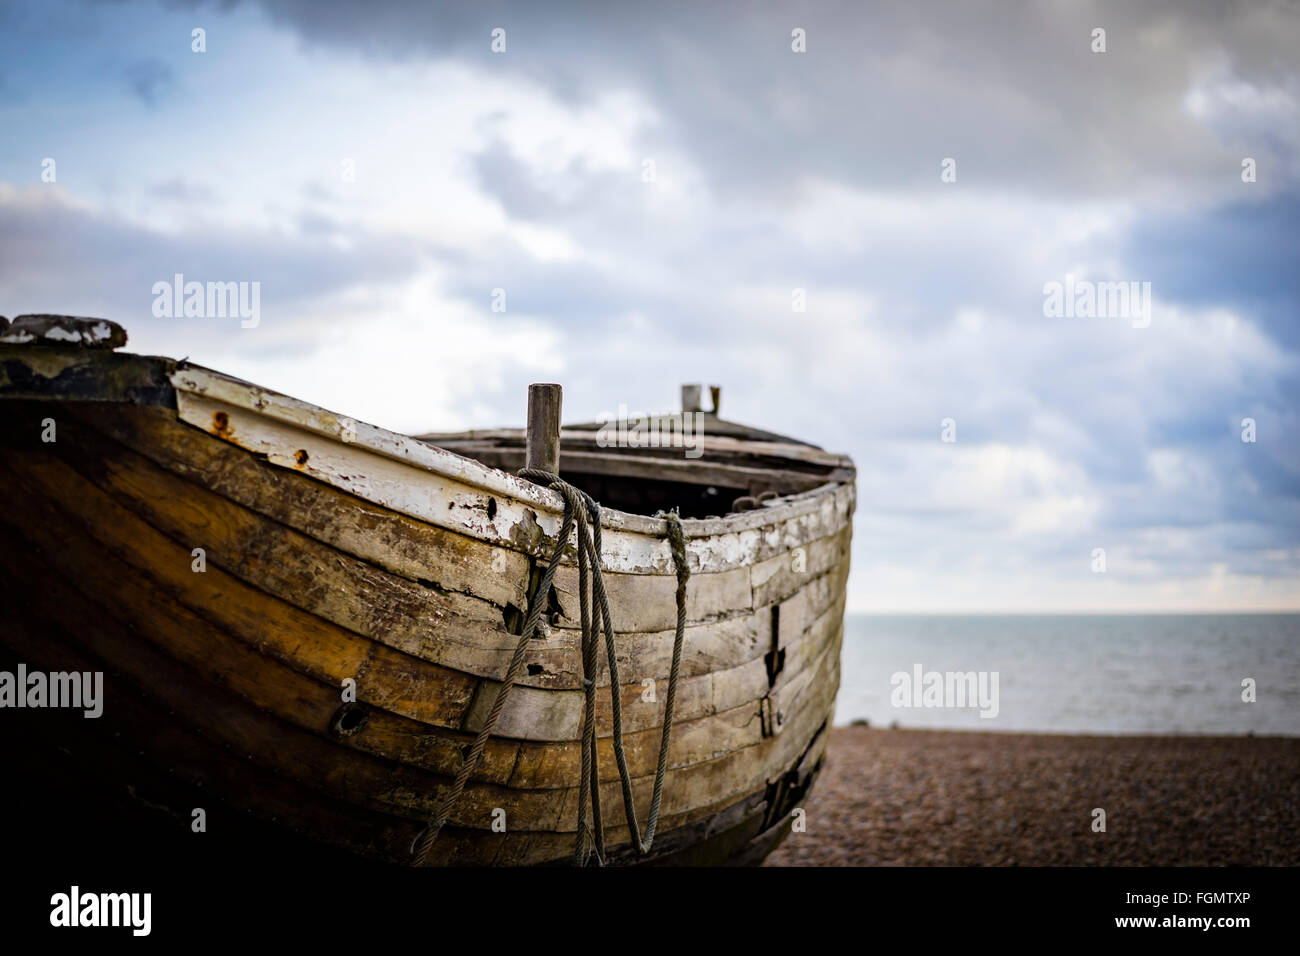 Old wooden fishing boat on Brighton beach,Sussex, UK - Stock Image